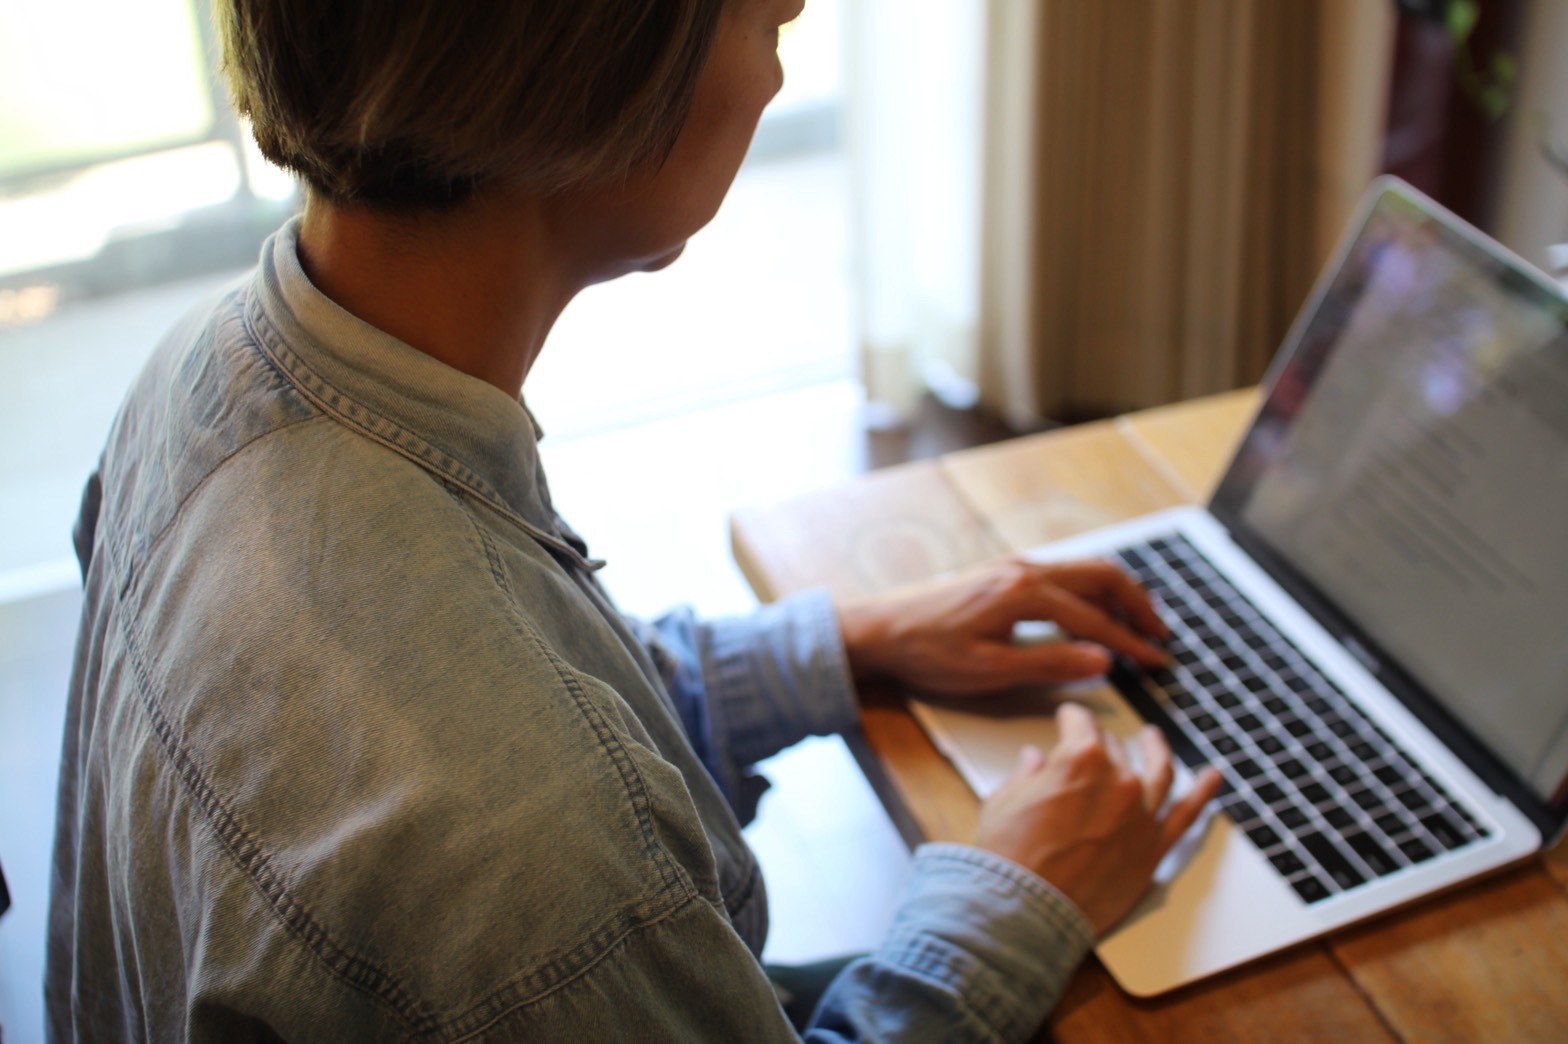 A woman works on her laptop computer at home during COVID-19.